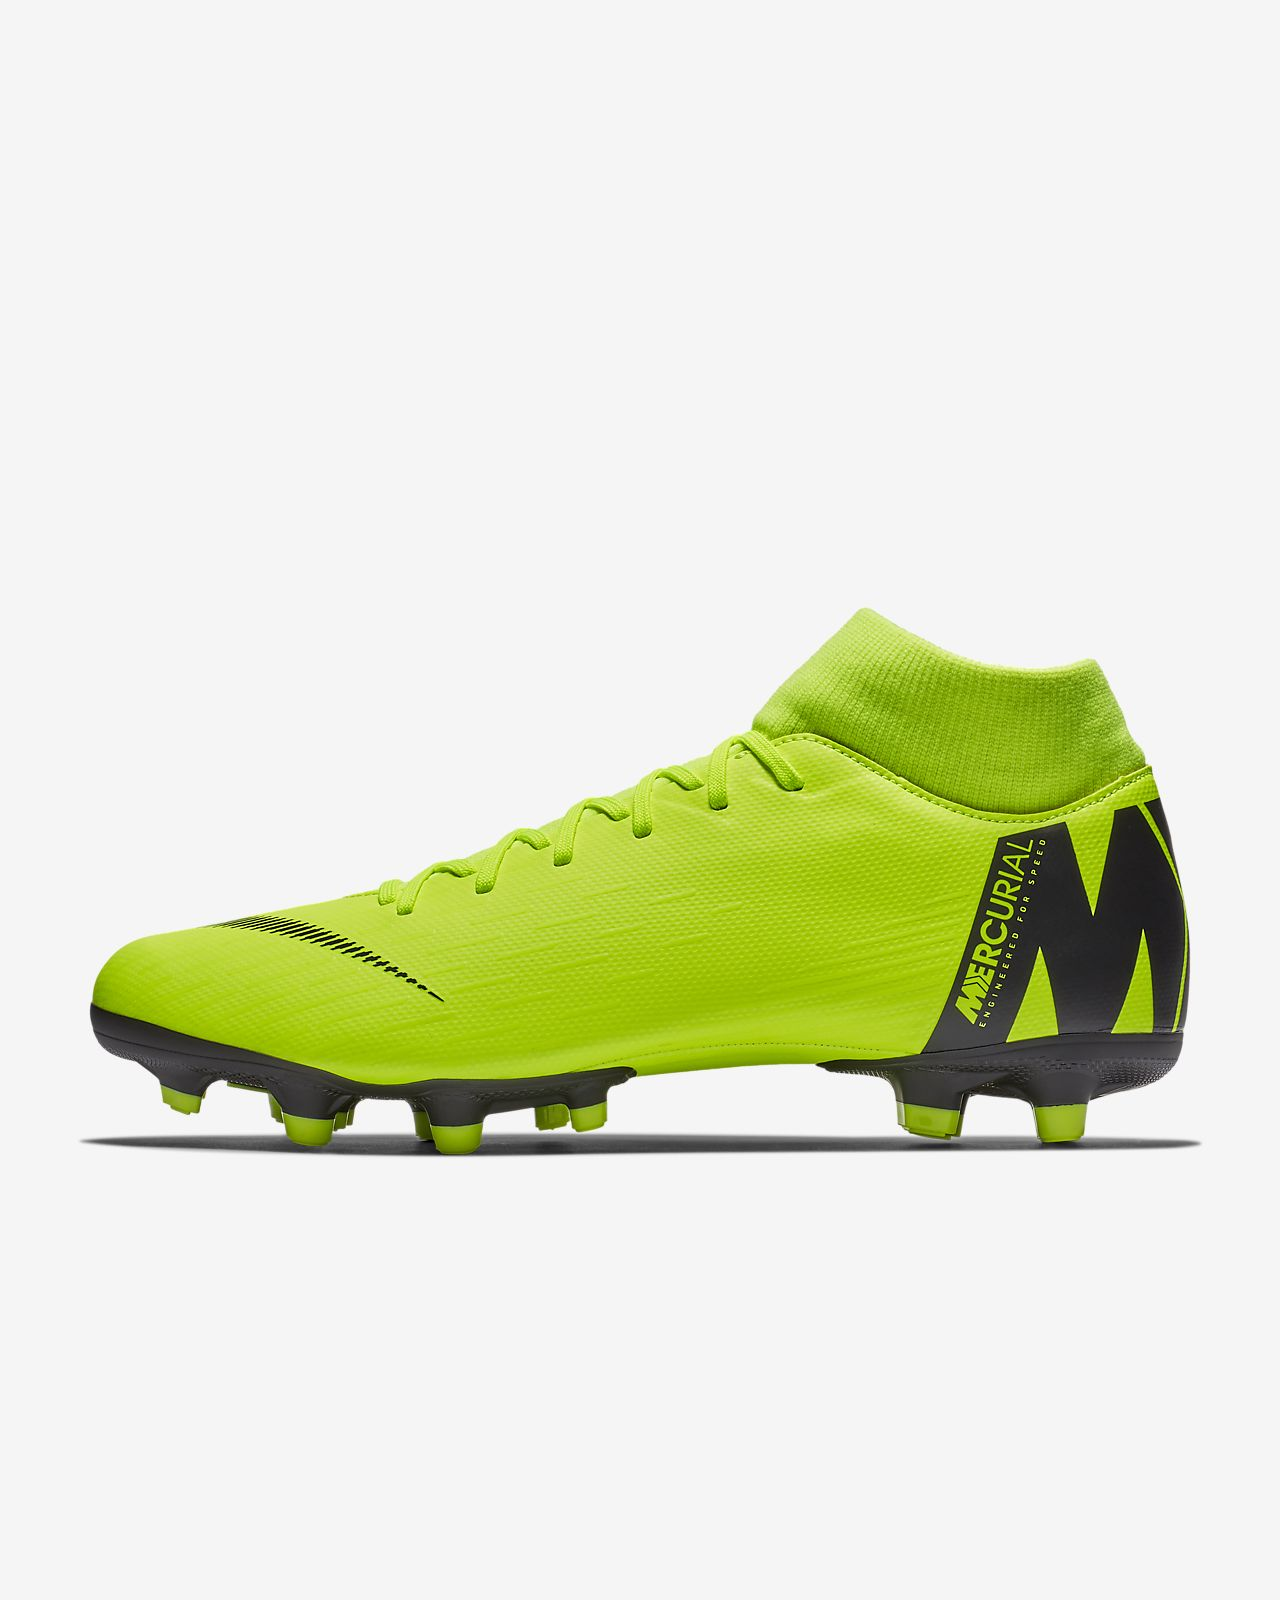 6a754d03aa3 ... discount code for nike mercurial superfly 6 academy mg multi ground soccer  cleat c088c 38286